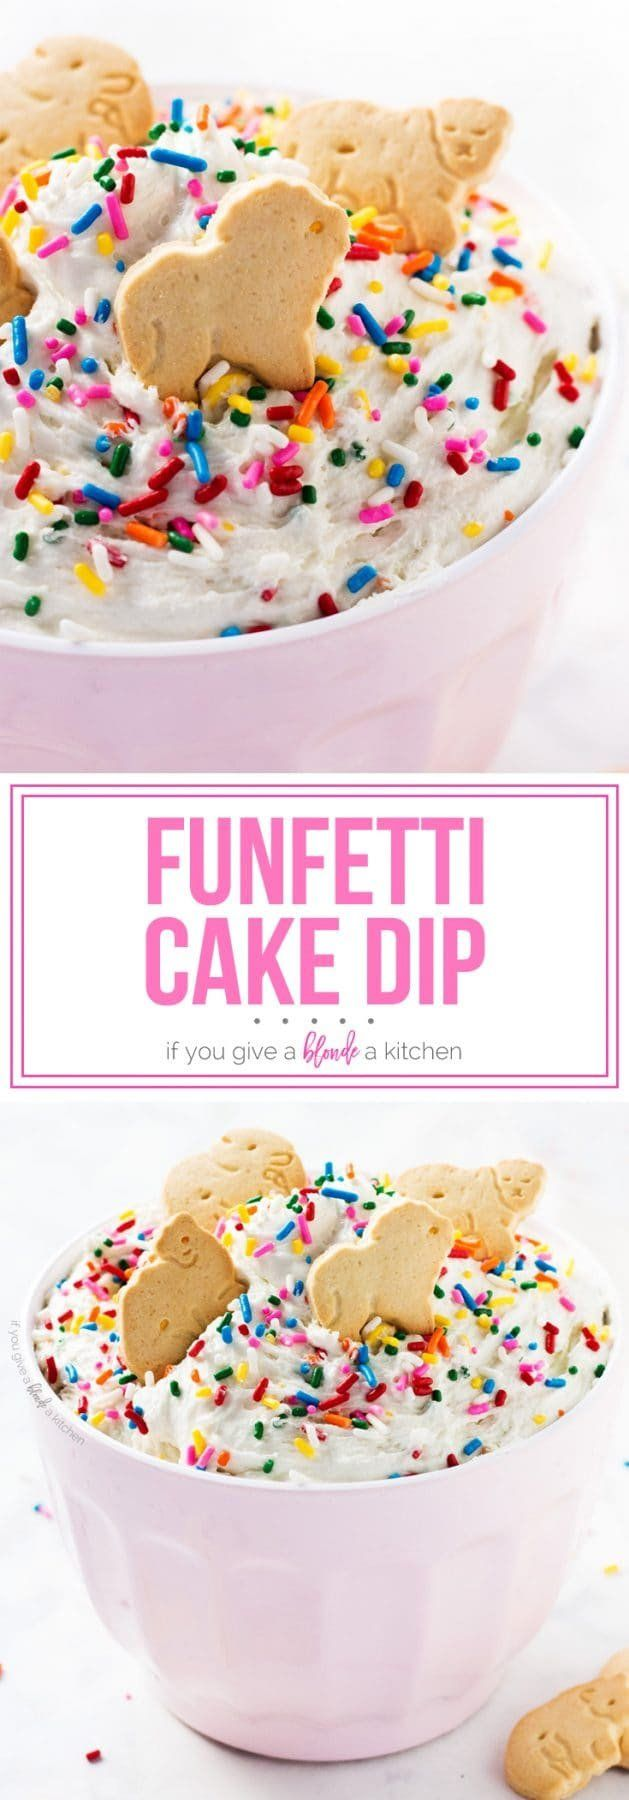 Funfetti cake dip is the perfect no bake birthday dessert This